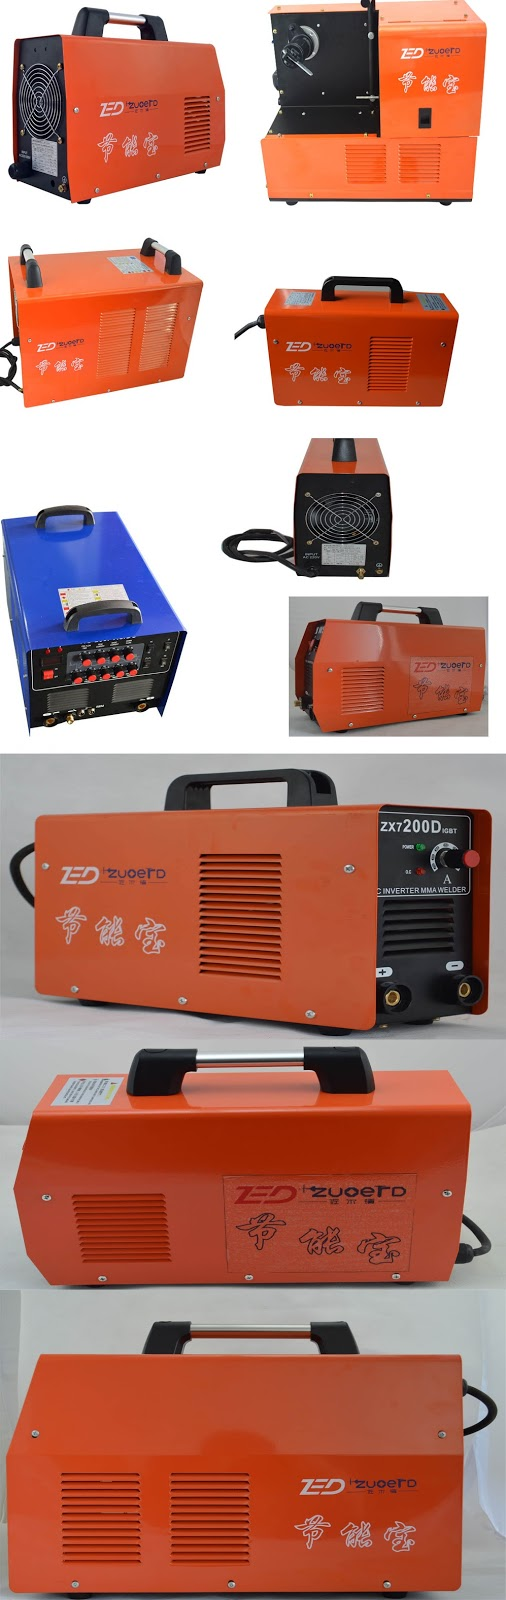 mos dc inverter tig welder igbt gas shielded welding machine mos inverter air plasma cutting machine mos dc inverter manual arc welding machine [ 506 x 1600 Pixel ]